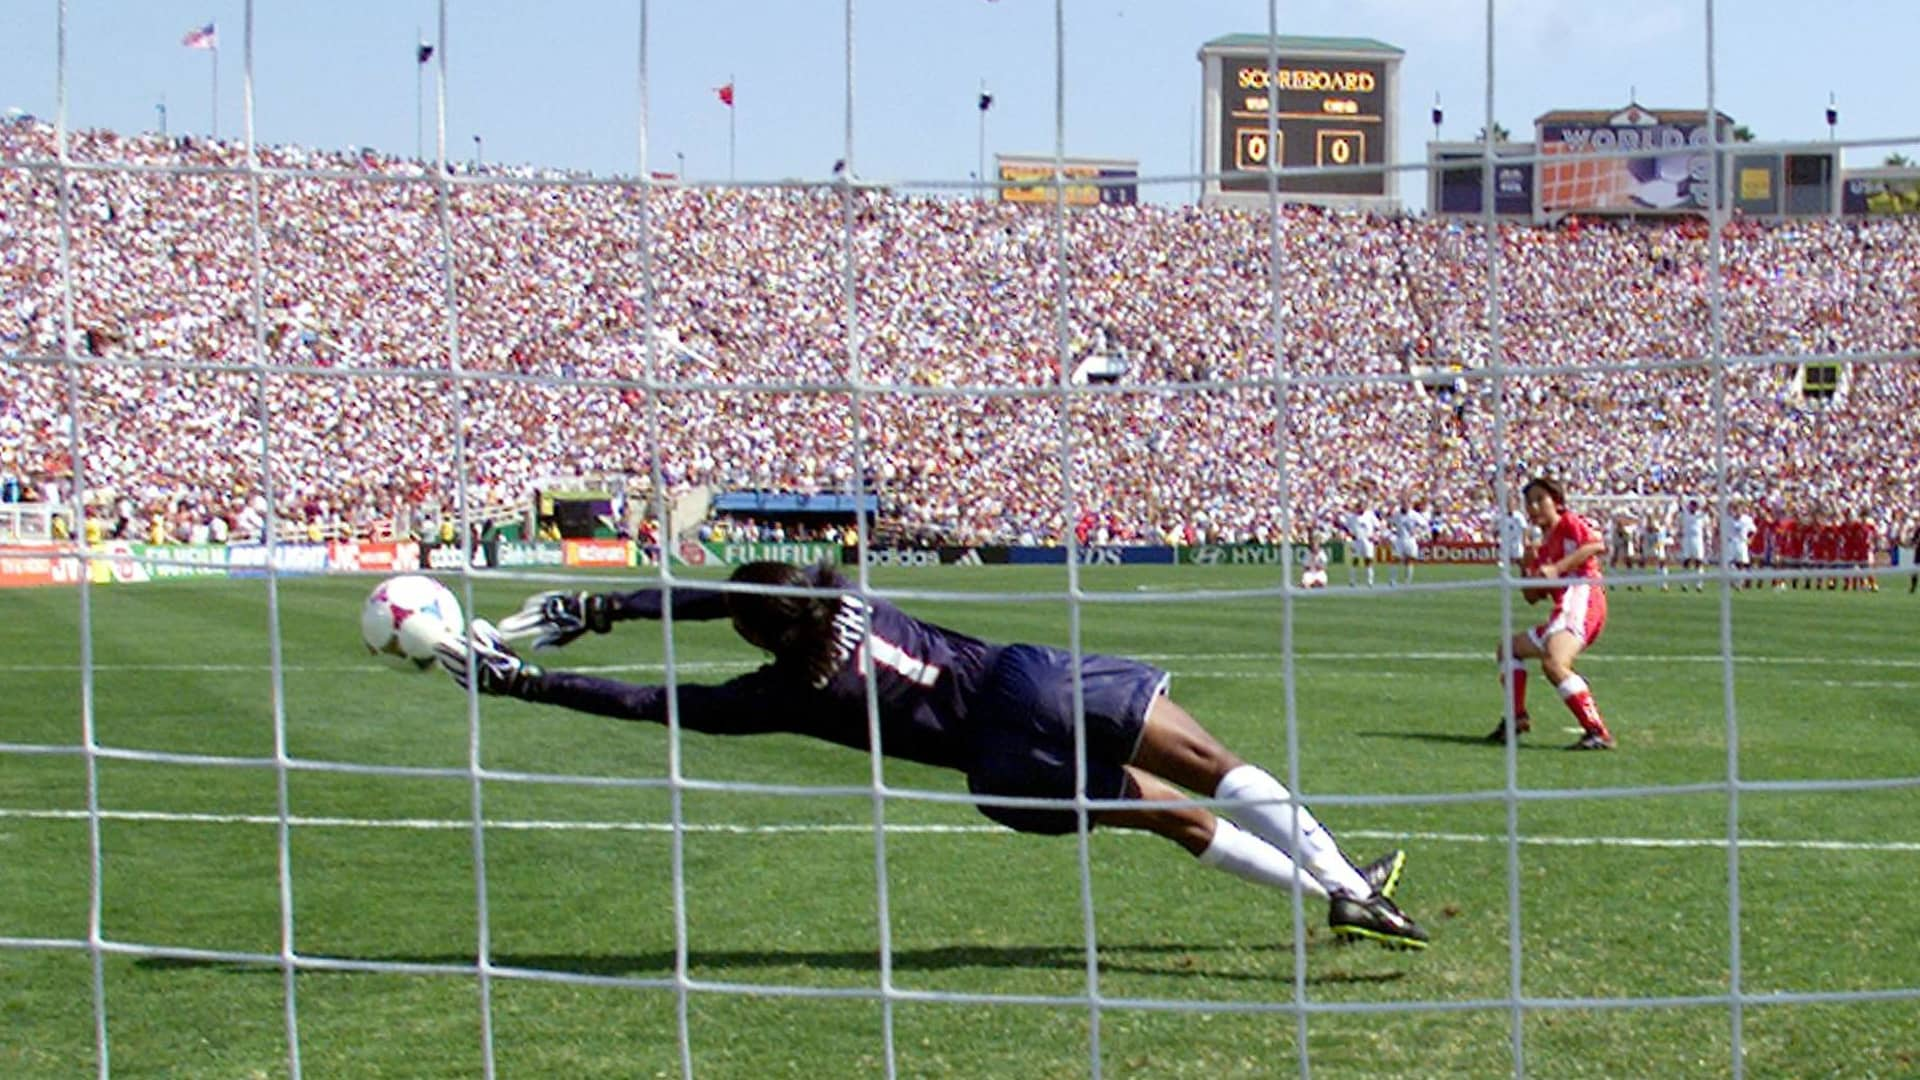 US goalkeeper Briana Scurry lunges as she stops the penalty kick by Liu Ying of the Chinese soccer team in a shoot-out at the end of their game in the finals of the Women's World Cup at the Rose Bowl in Pasadena, California 10 July 1999. The US team scored all of their five penalty shots to win the game.